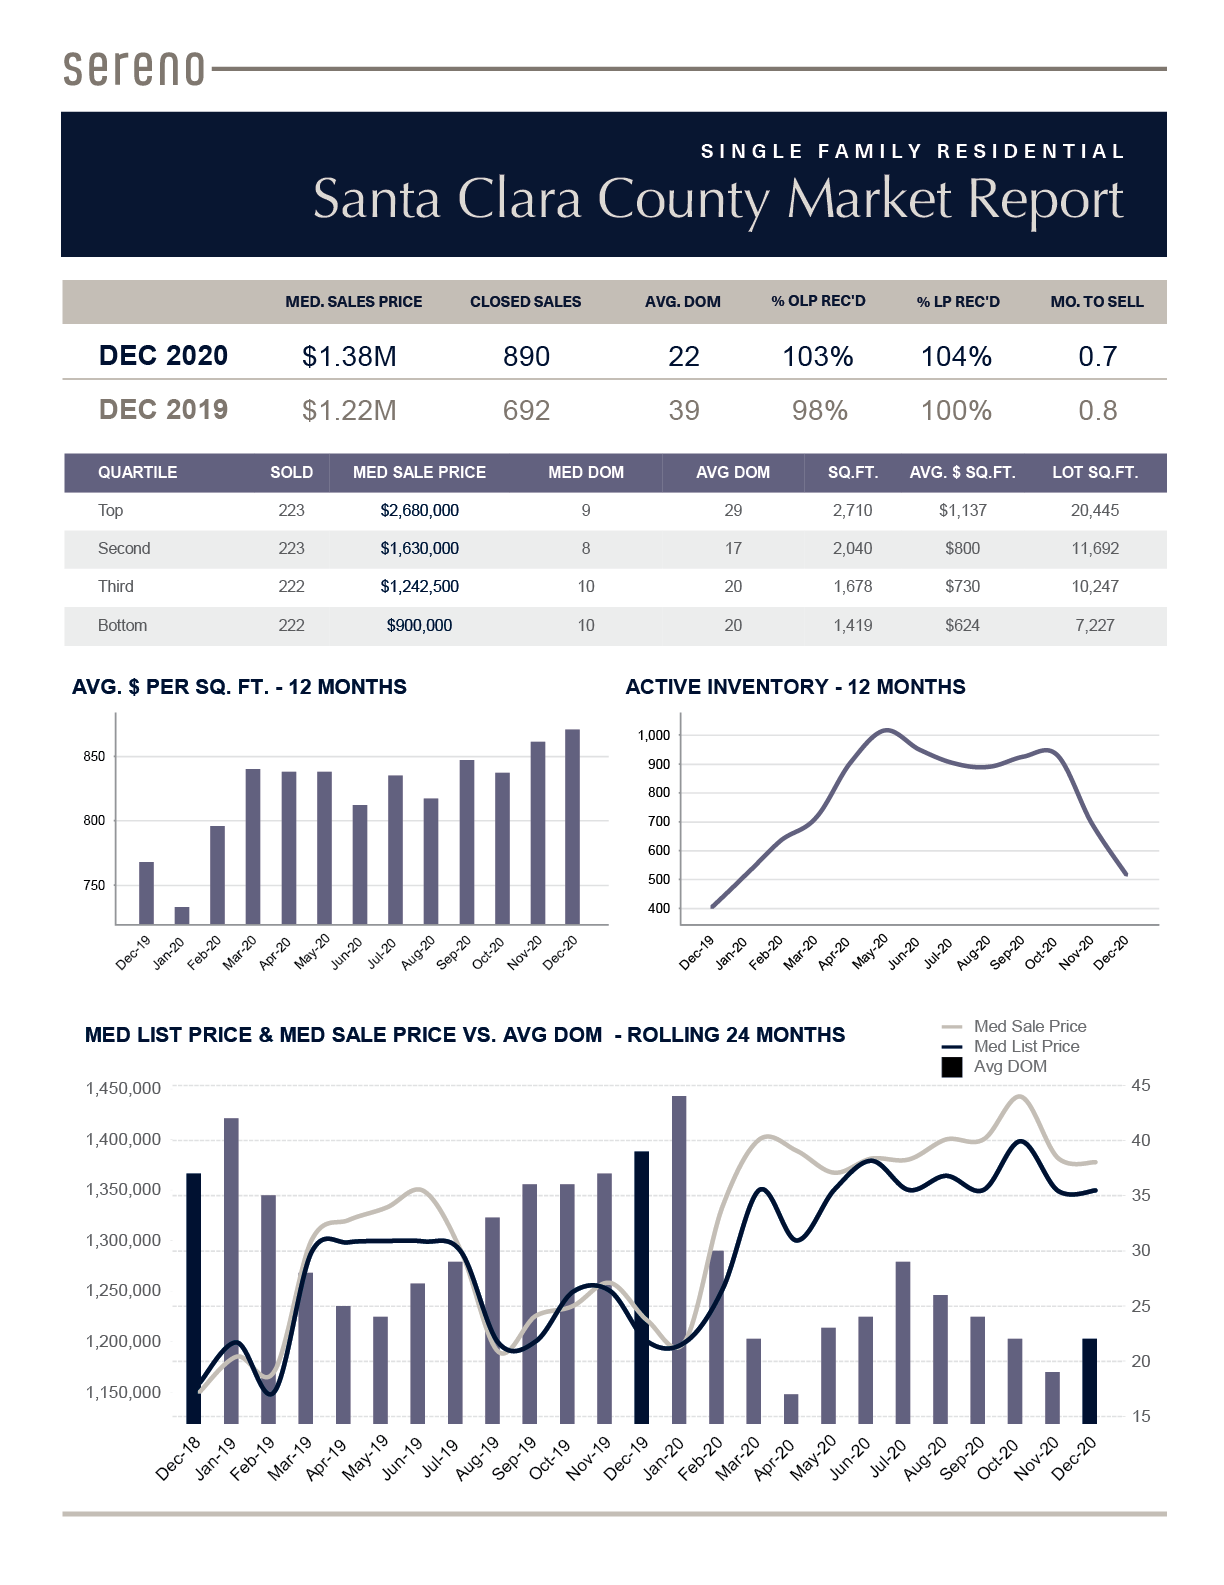 Dec 2020 – Single Family Residential Market Report - Santa Clara